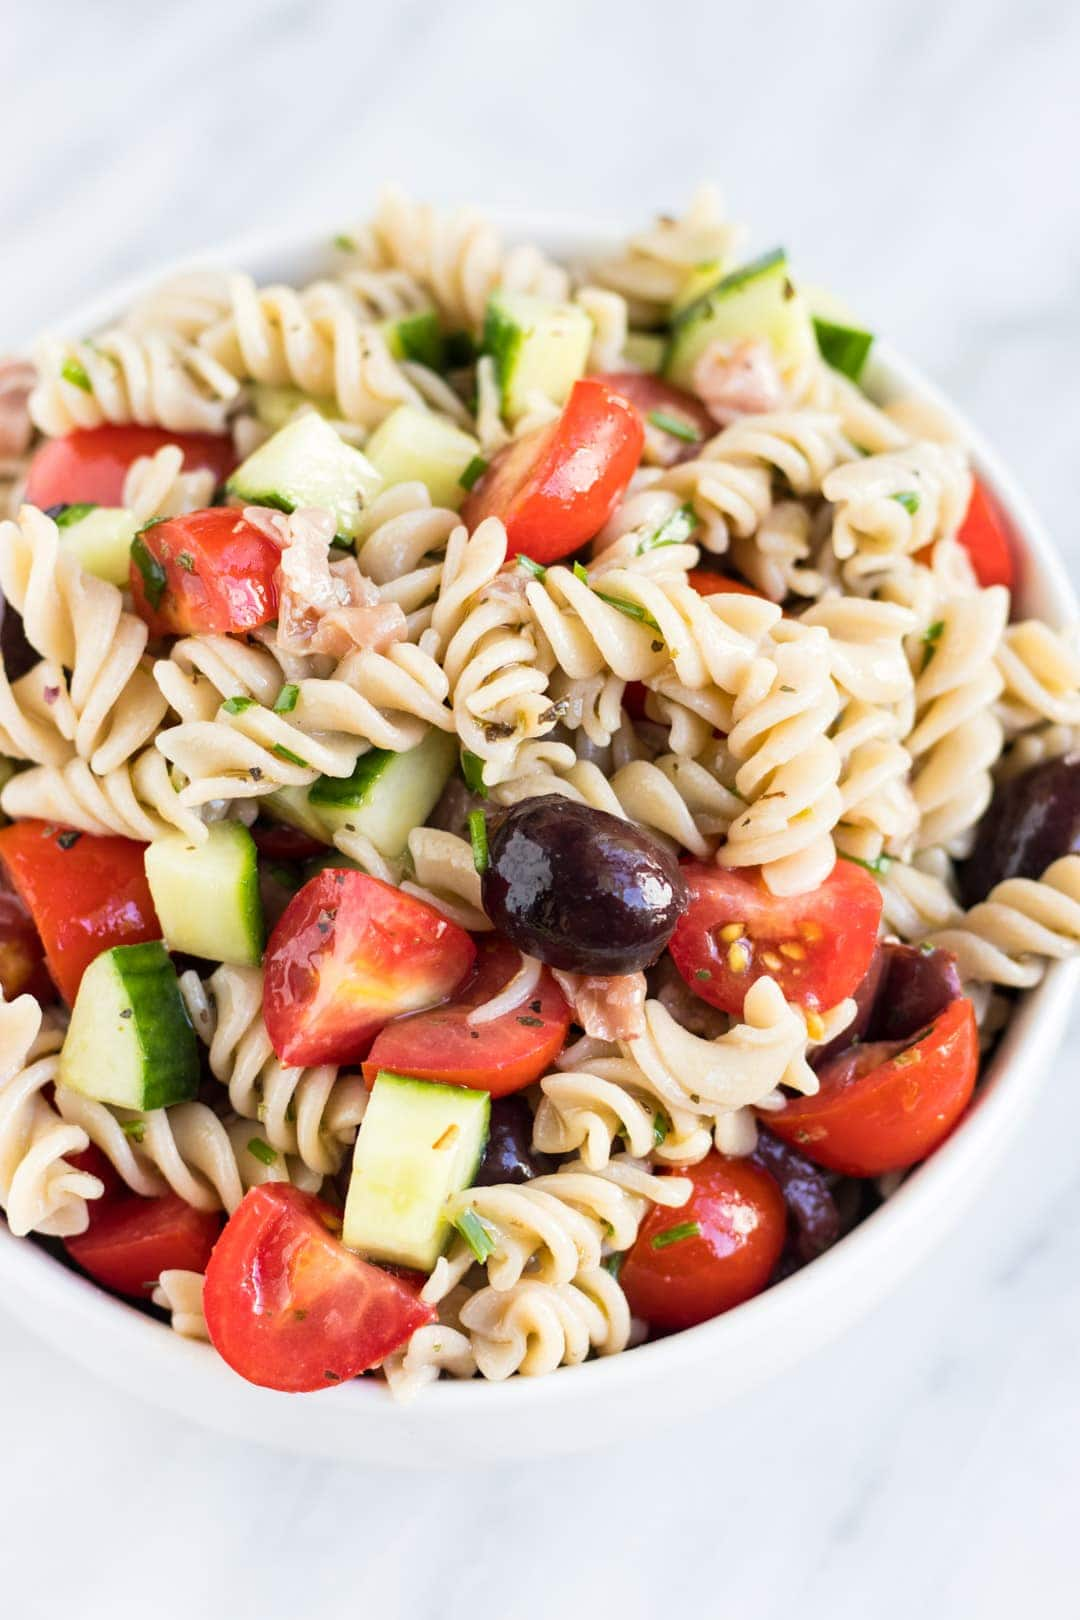 Low FODMAP Italian Pasta Salad